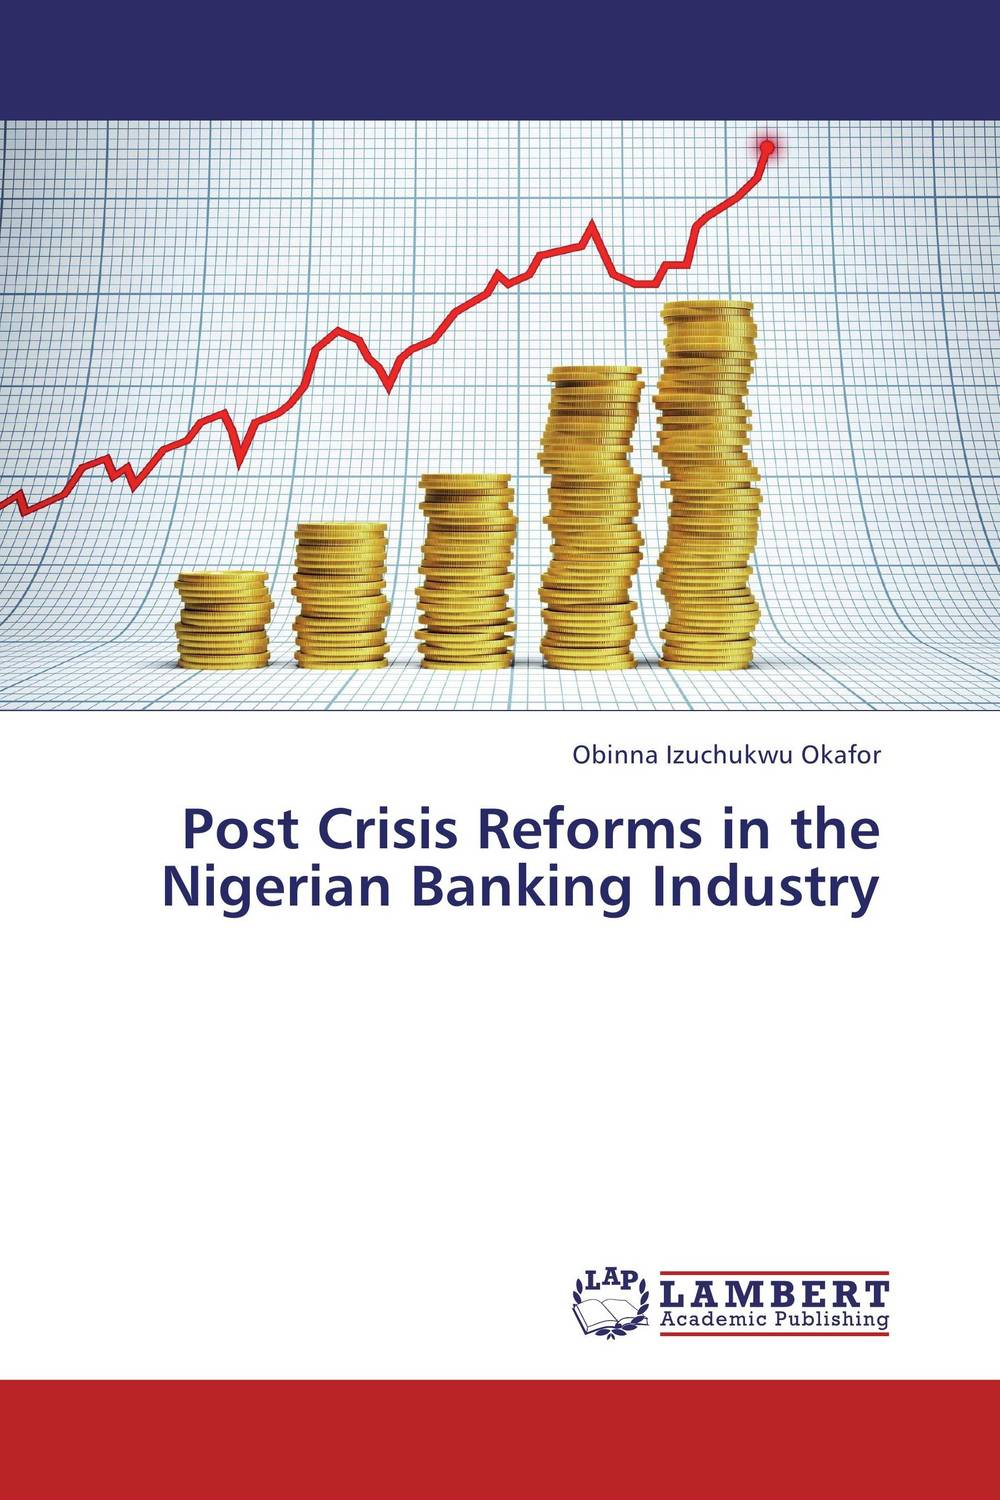 Post Crisis Reforms in the Nigerian Banking Industry global financial crisis and the nigerian petroleum sector